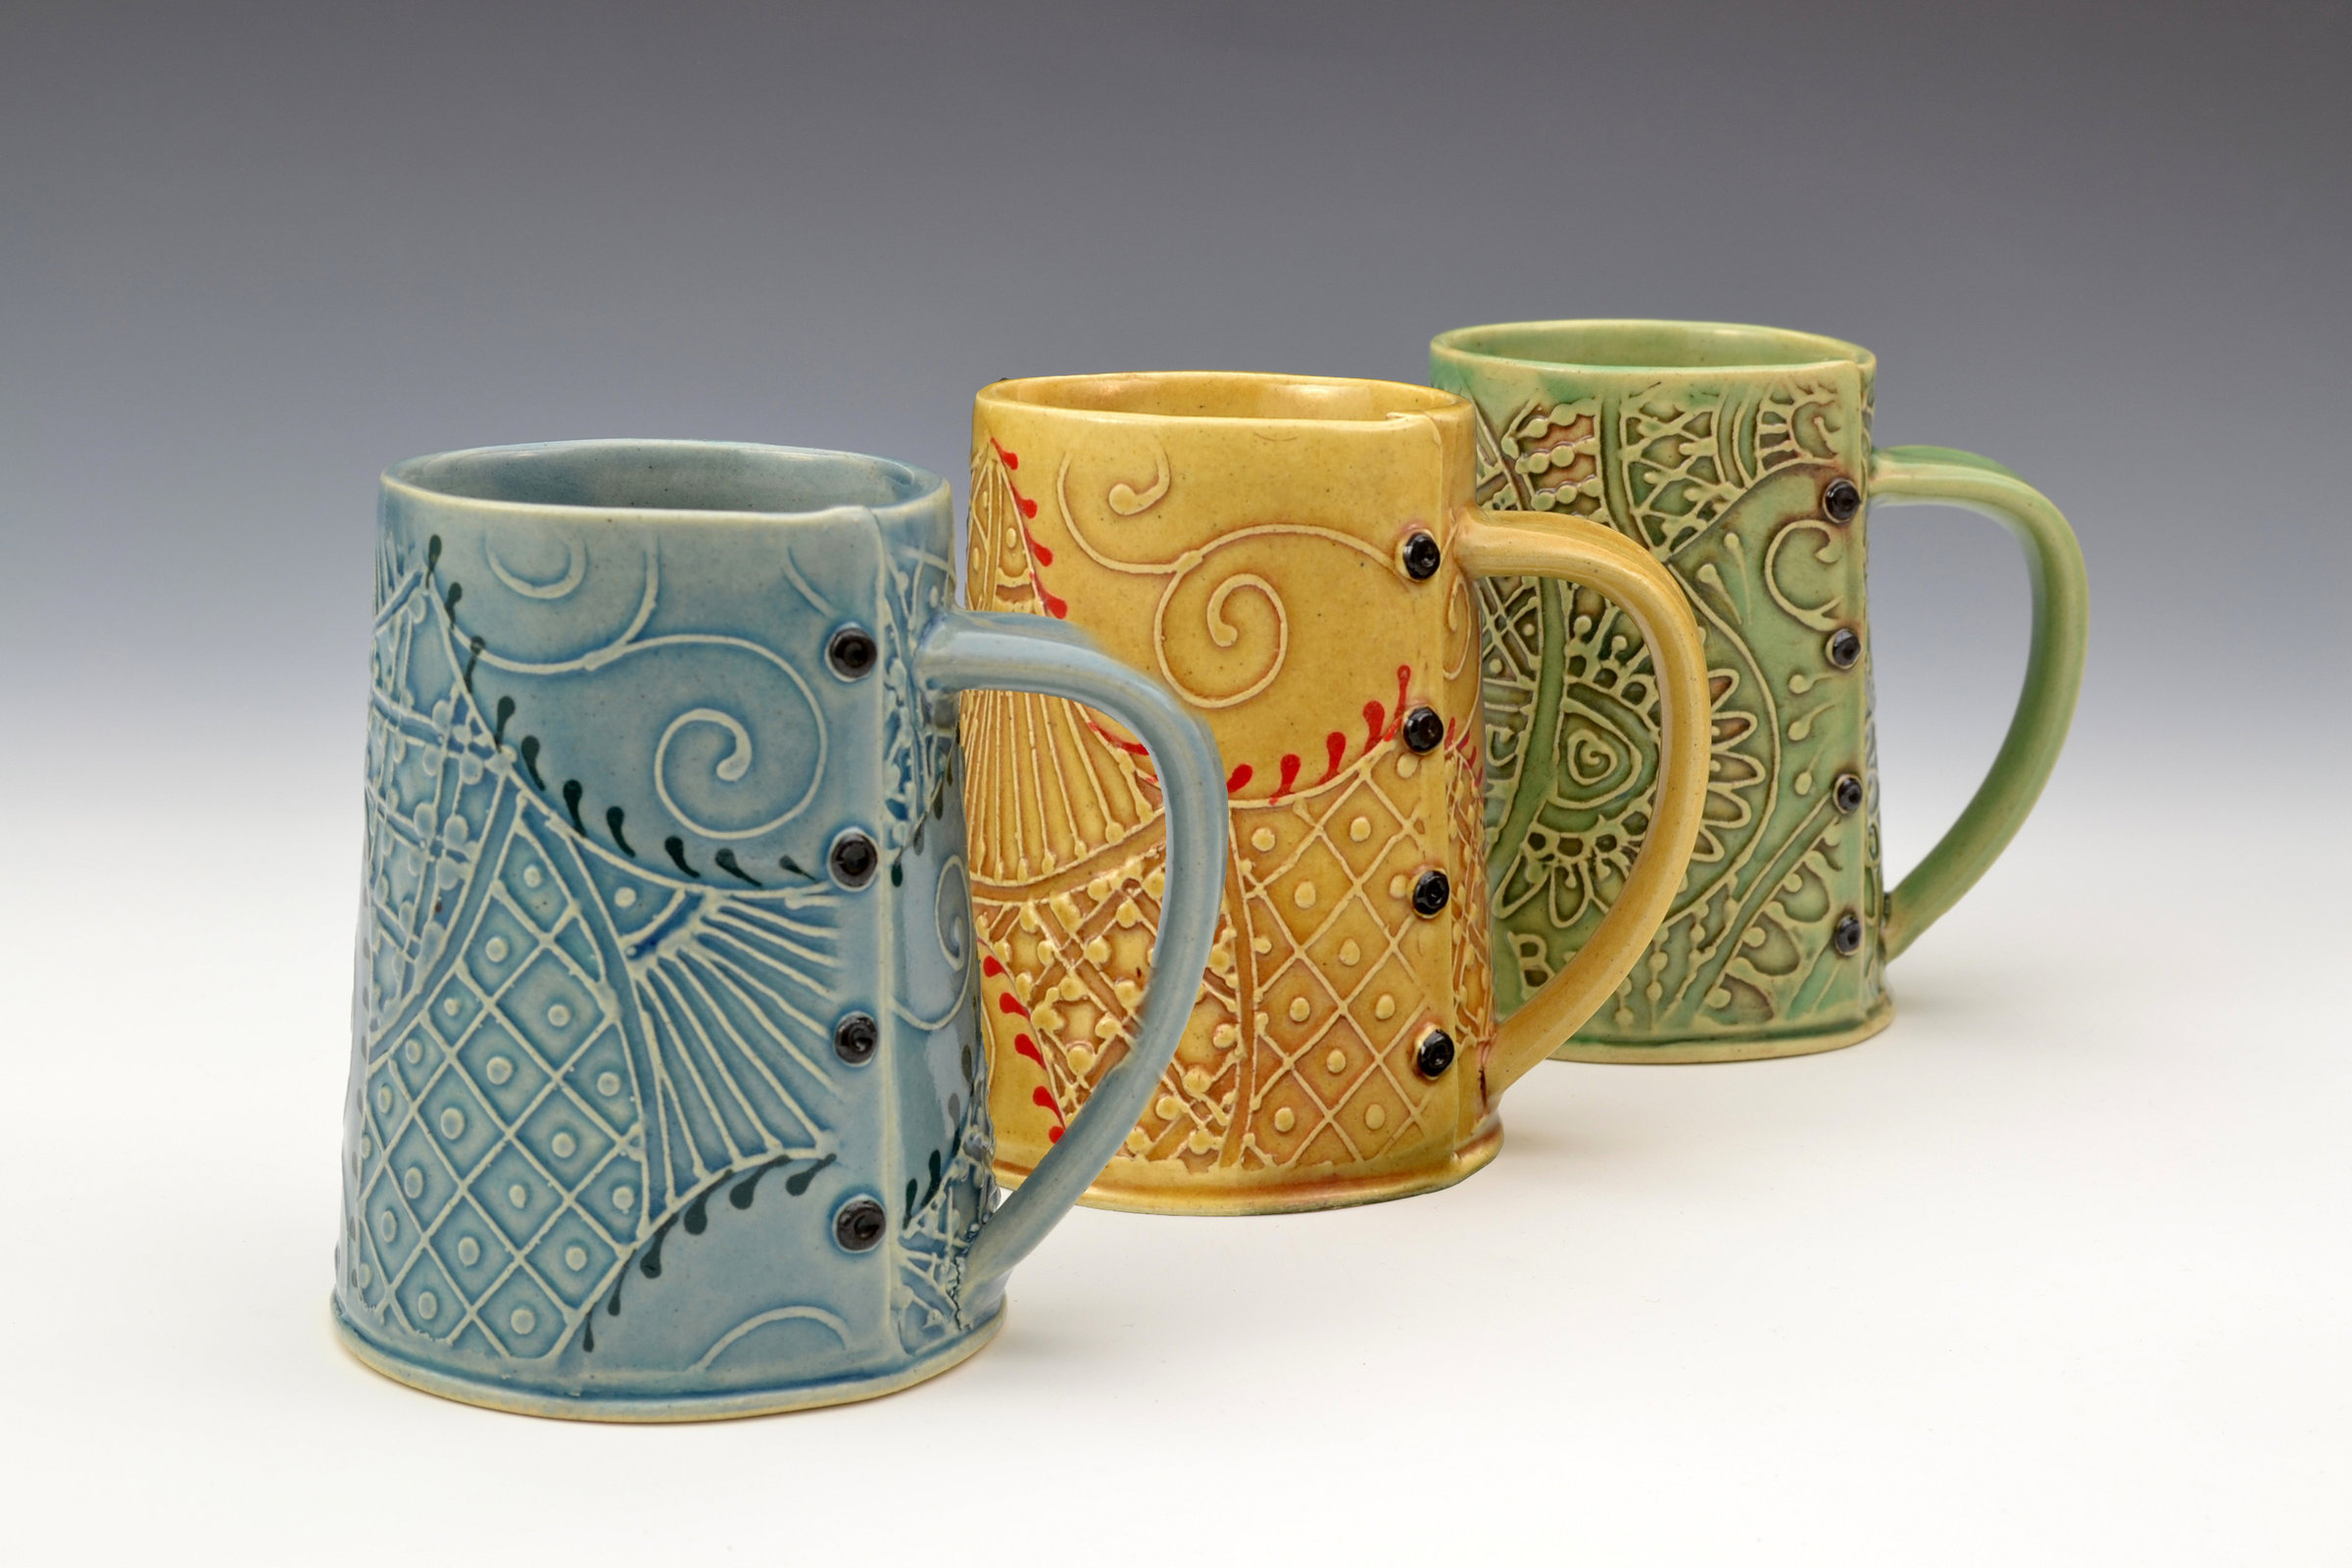 coffee and tea mug by charan sachar ceramic mug artful home